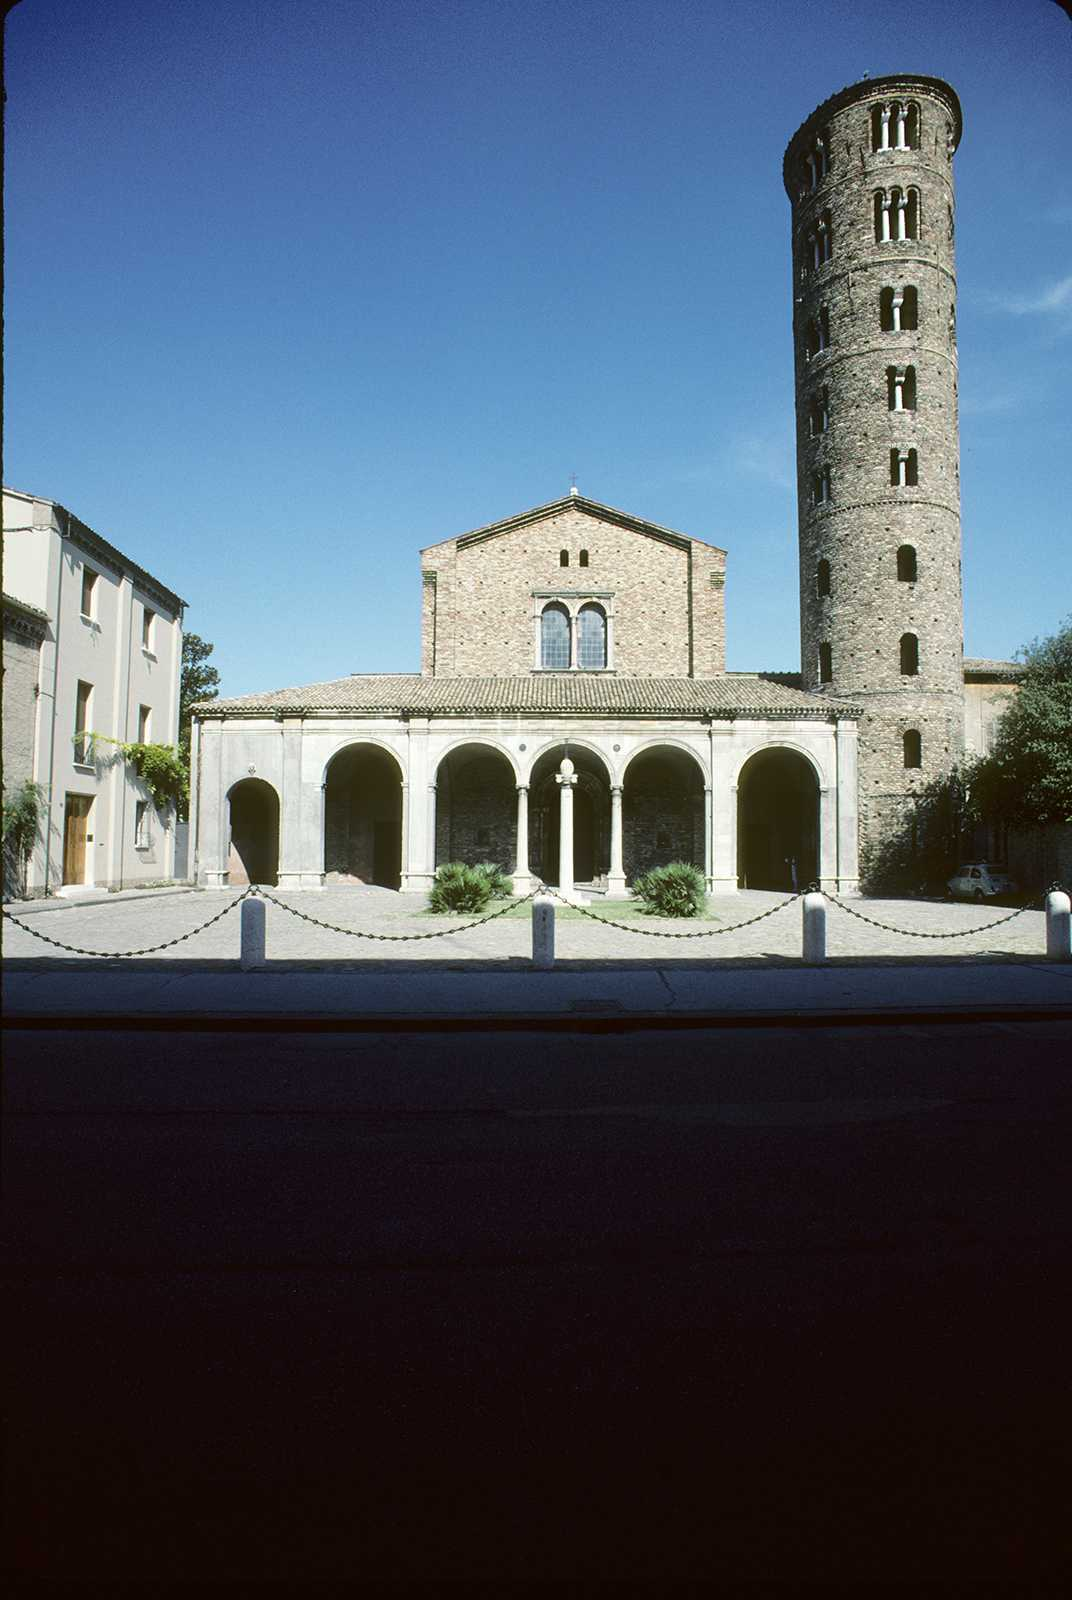 Basilica of Sant' Apollinare Nuovo, Ravenna, 1986. The tower near the corner of the frame shows significant distortion.